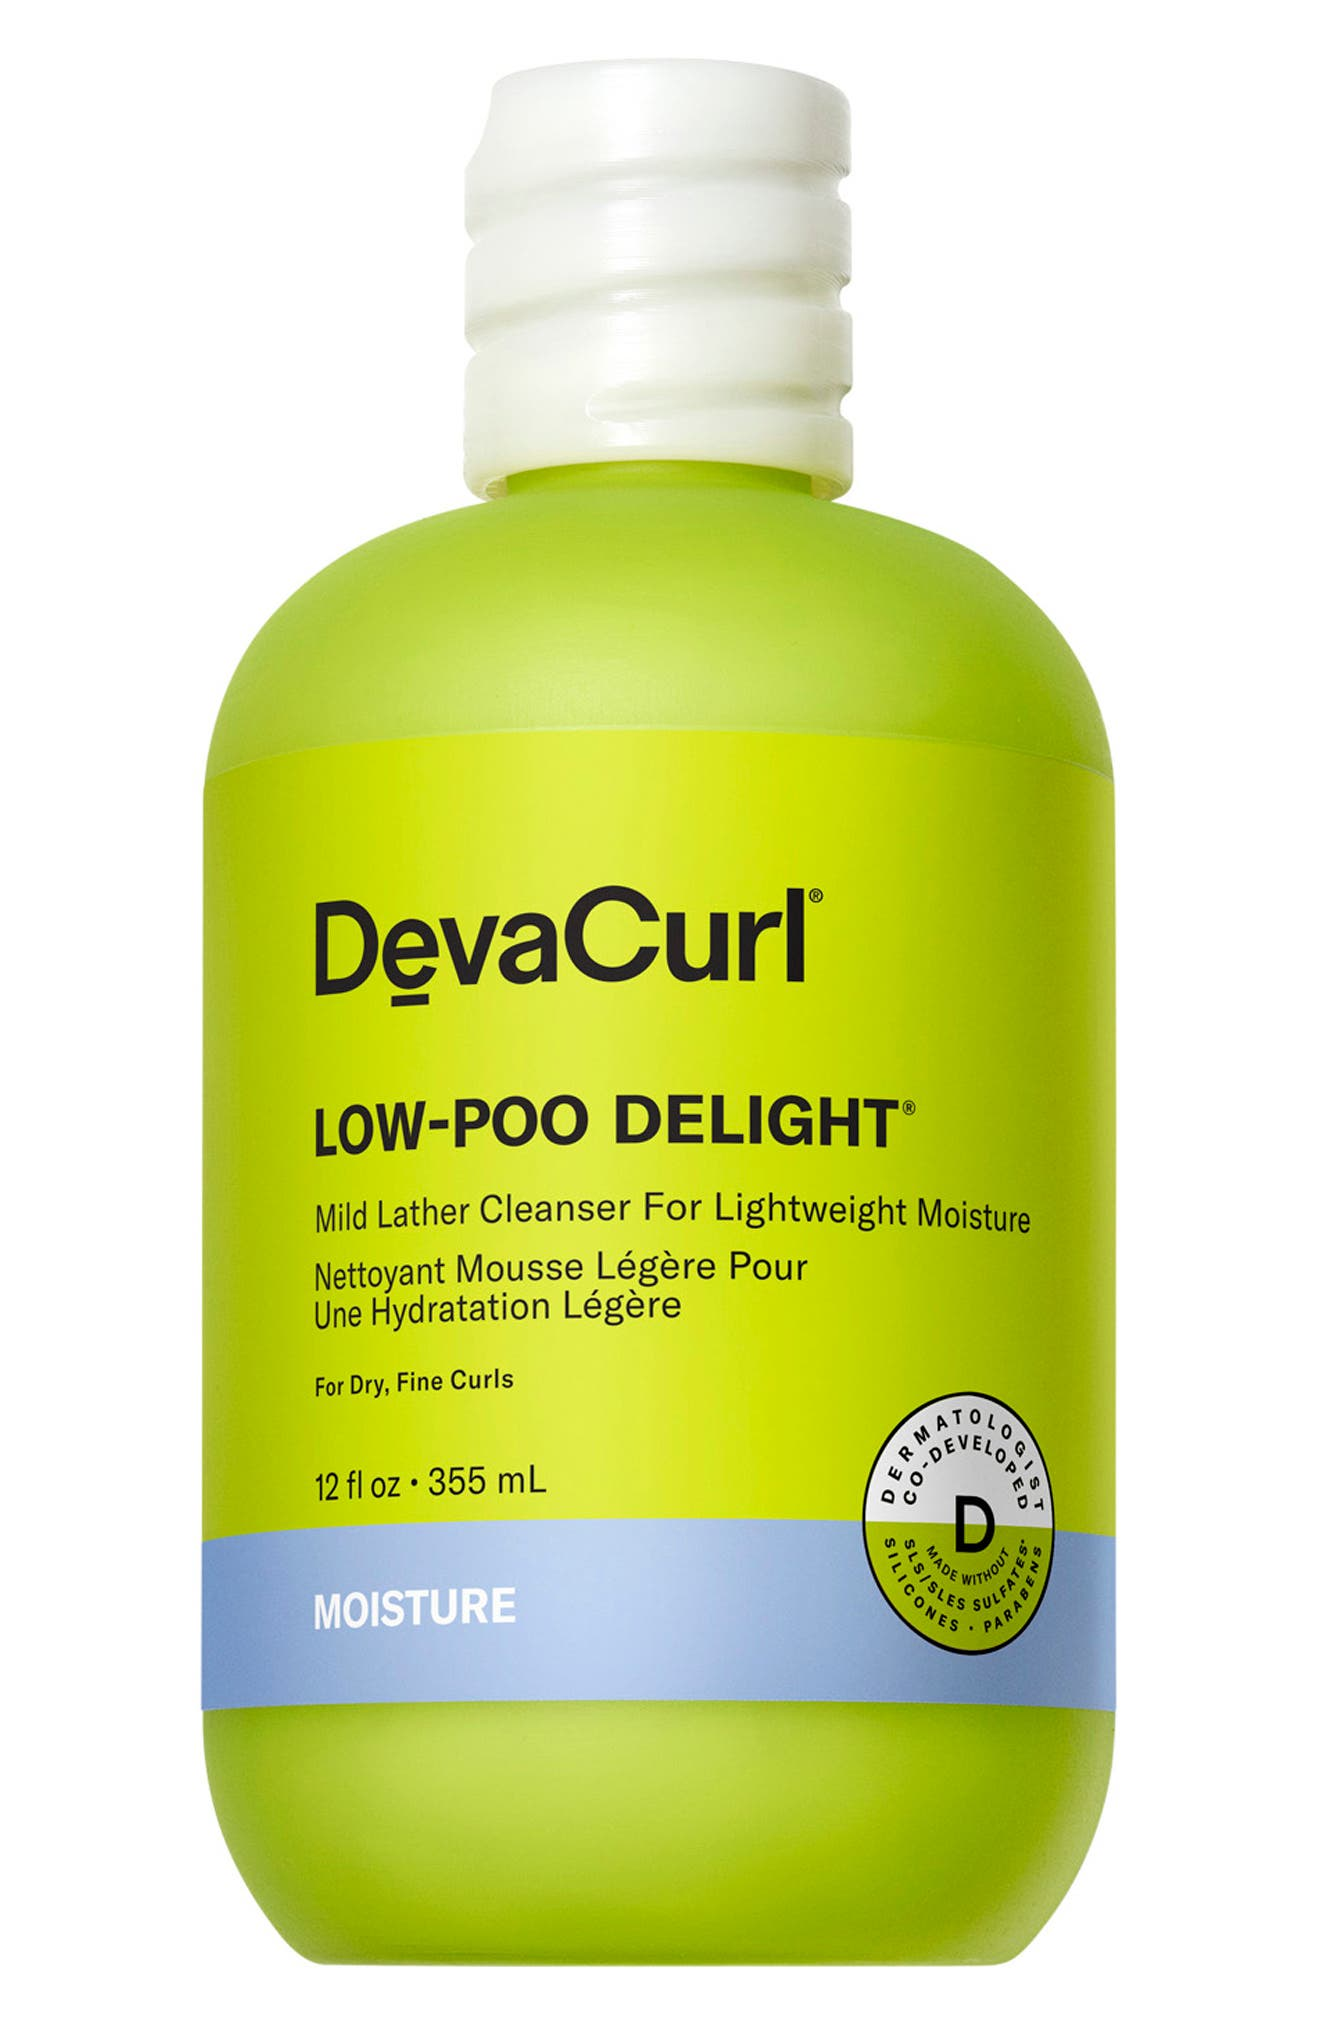 Low-Poo Delight Mild Lather Cleanser